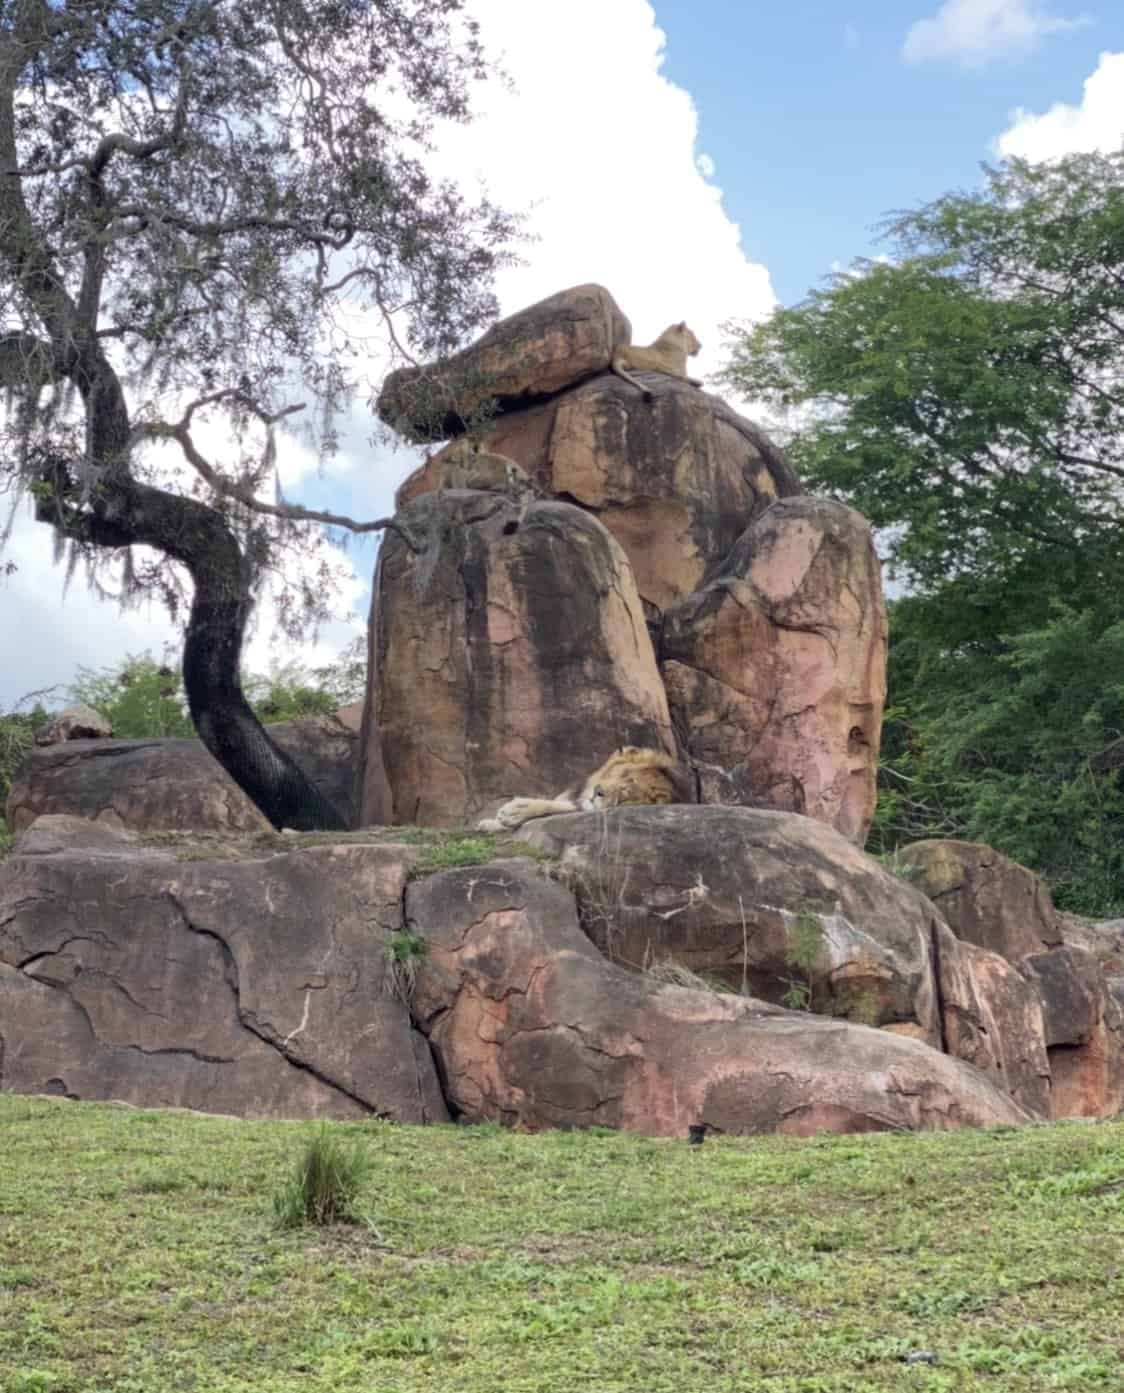 three lions sitting on a large rock shaped like donald duck